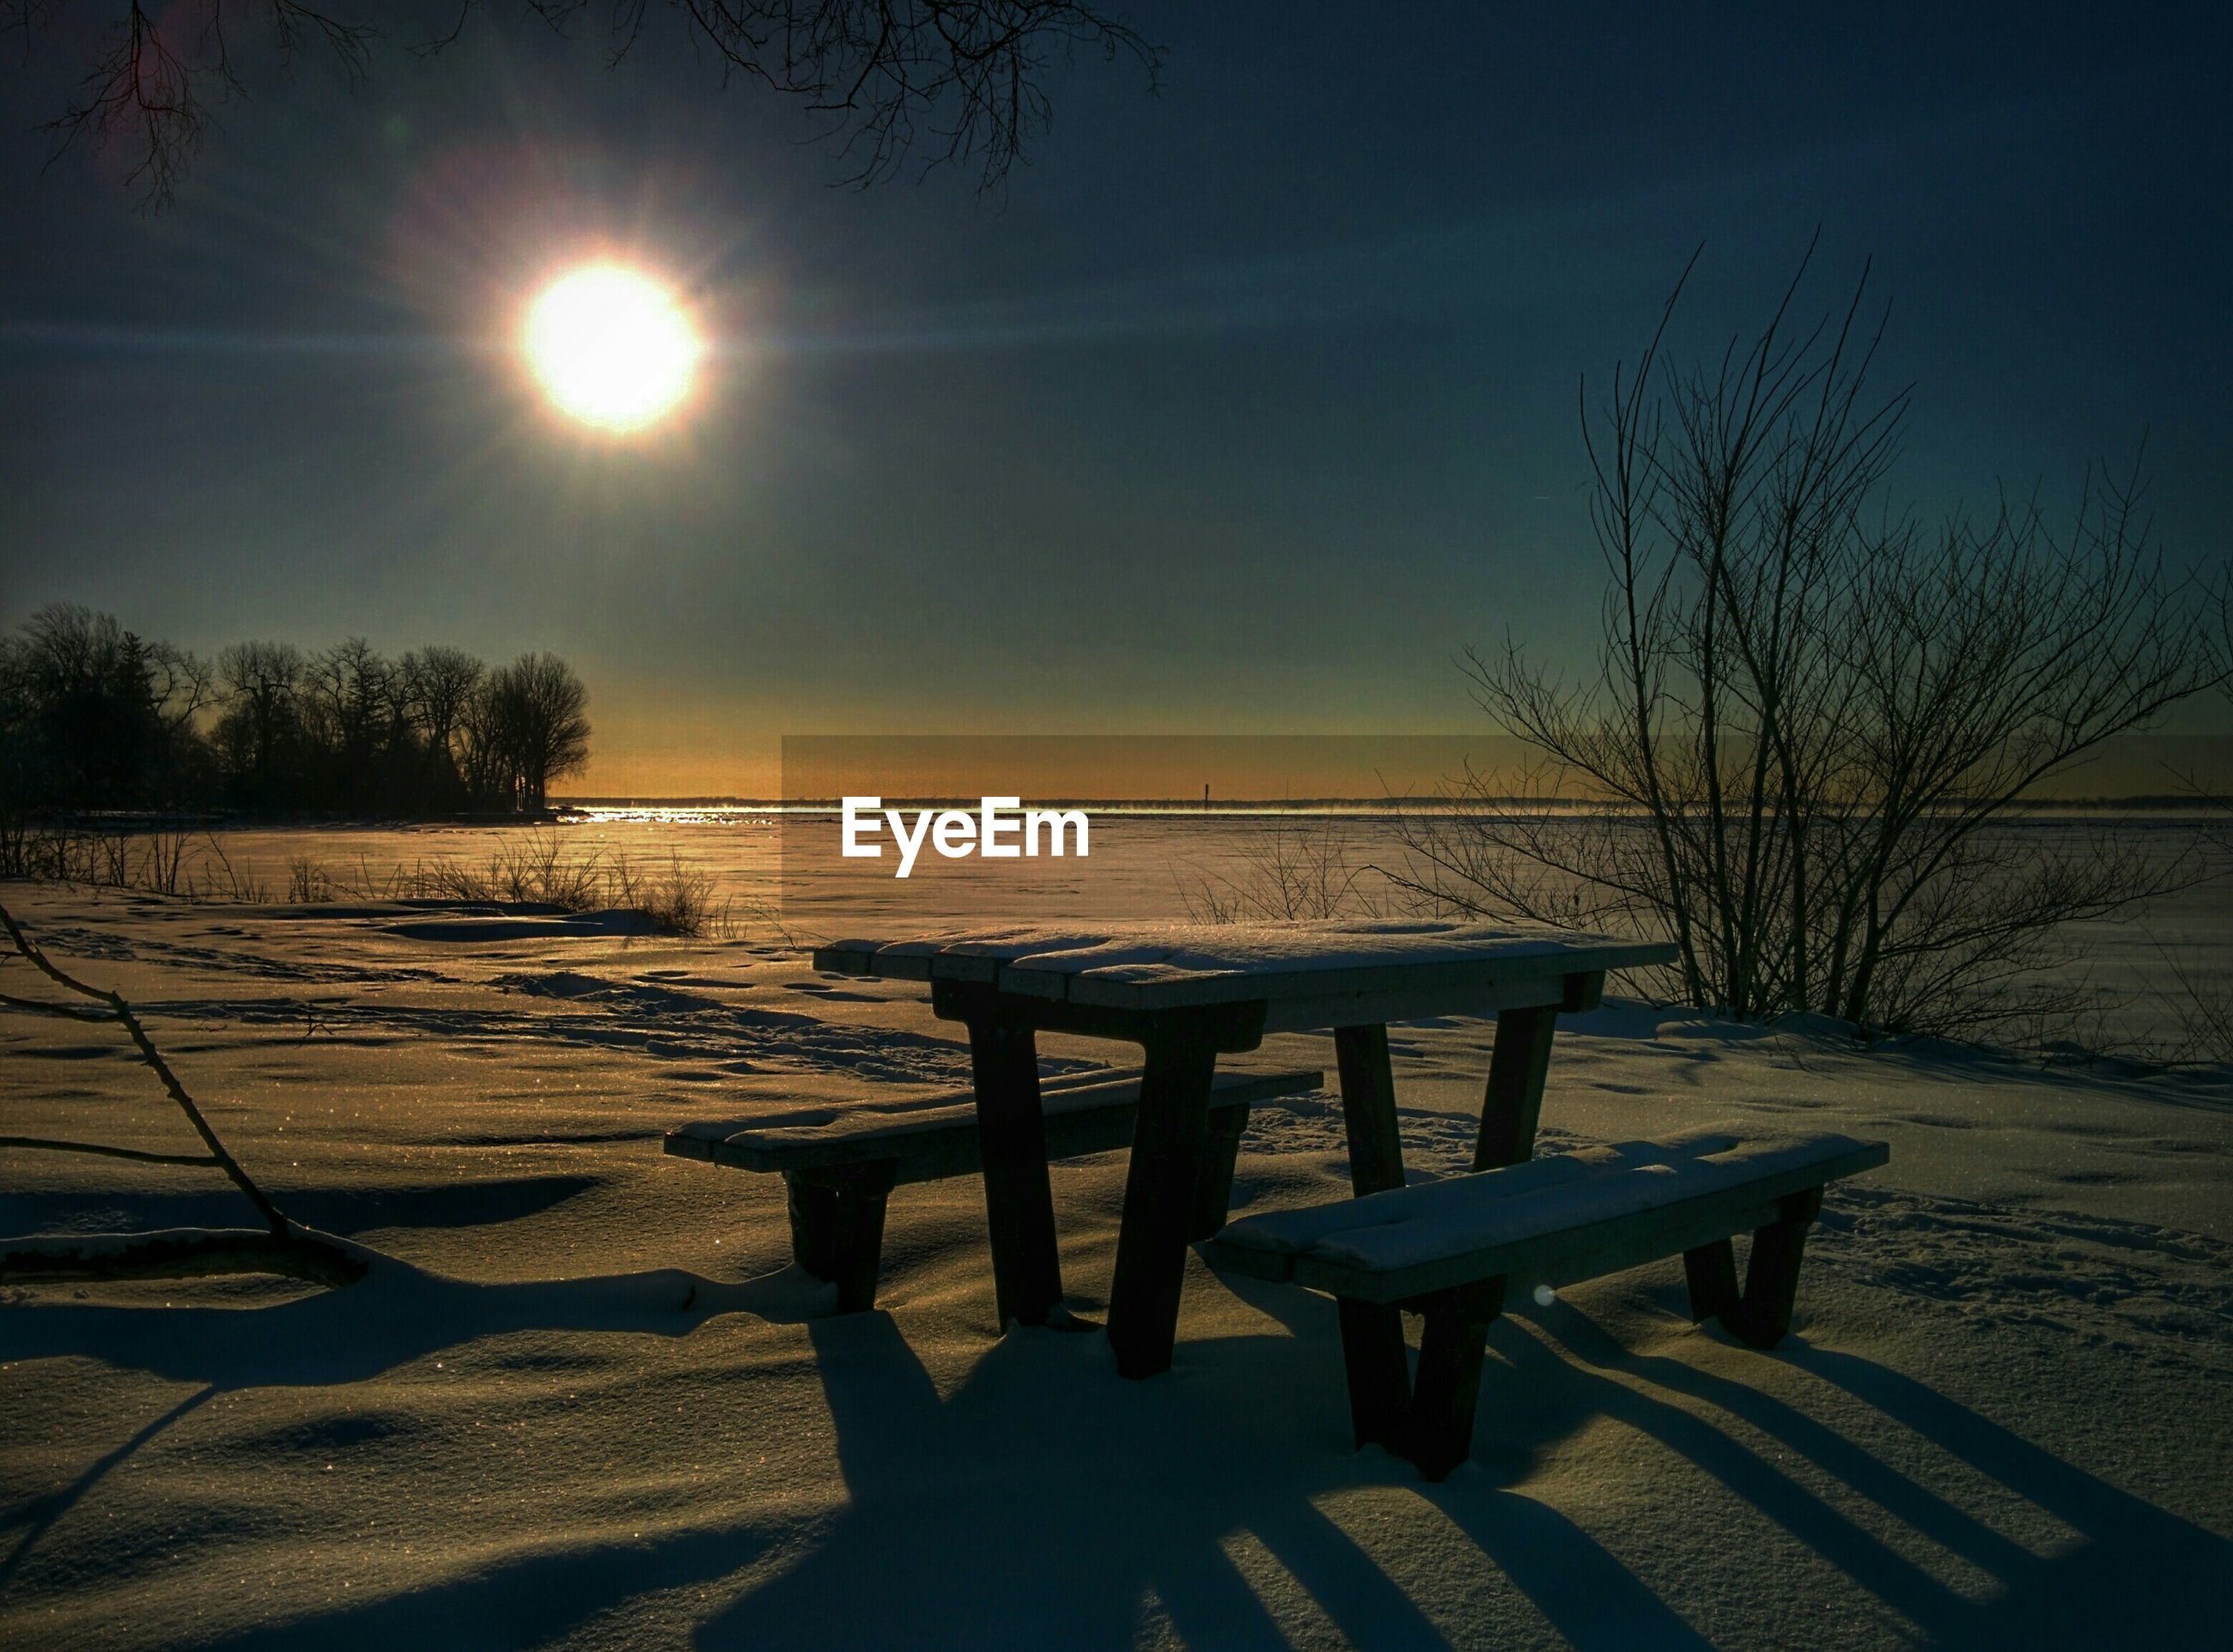 Snow covered bench on field against sky during sunset